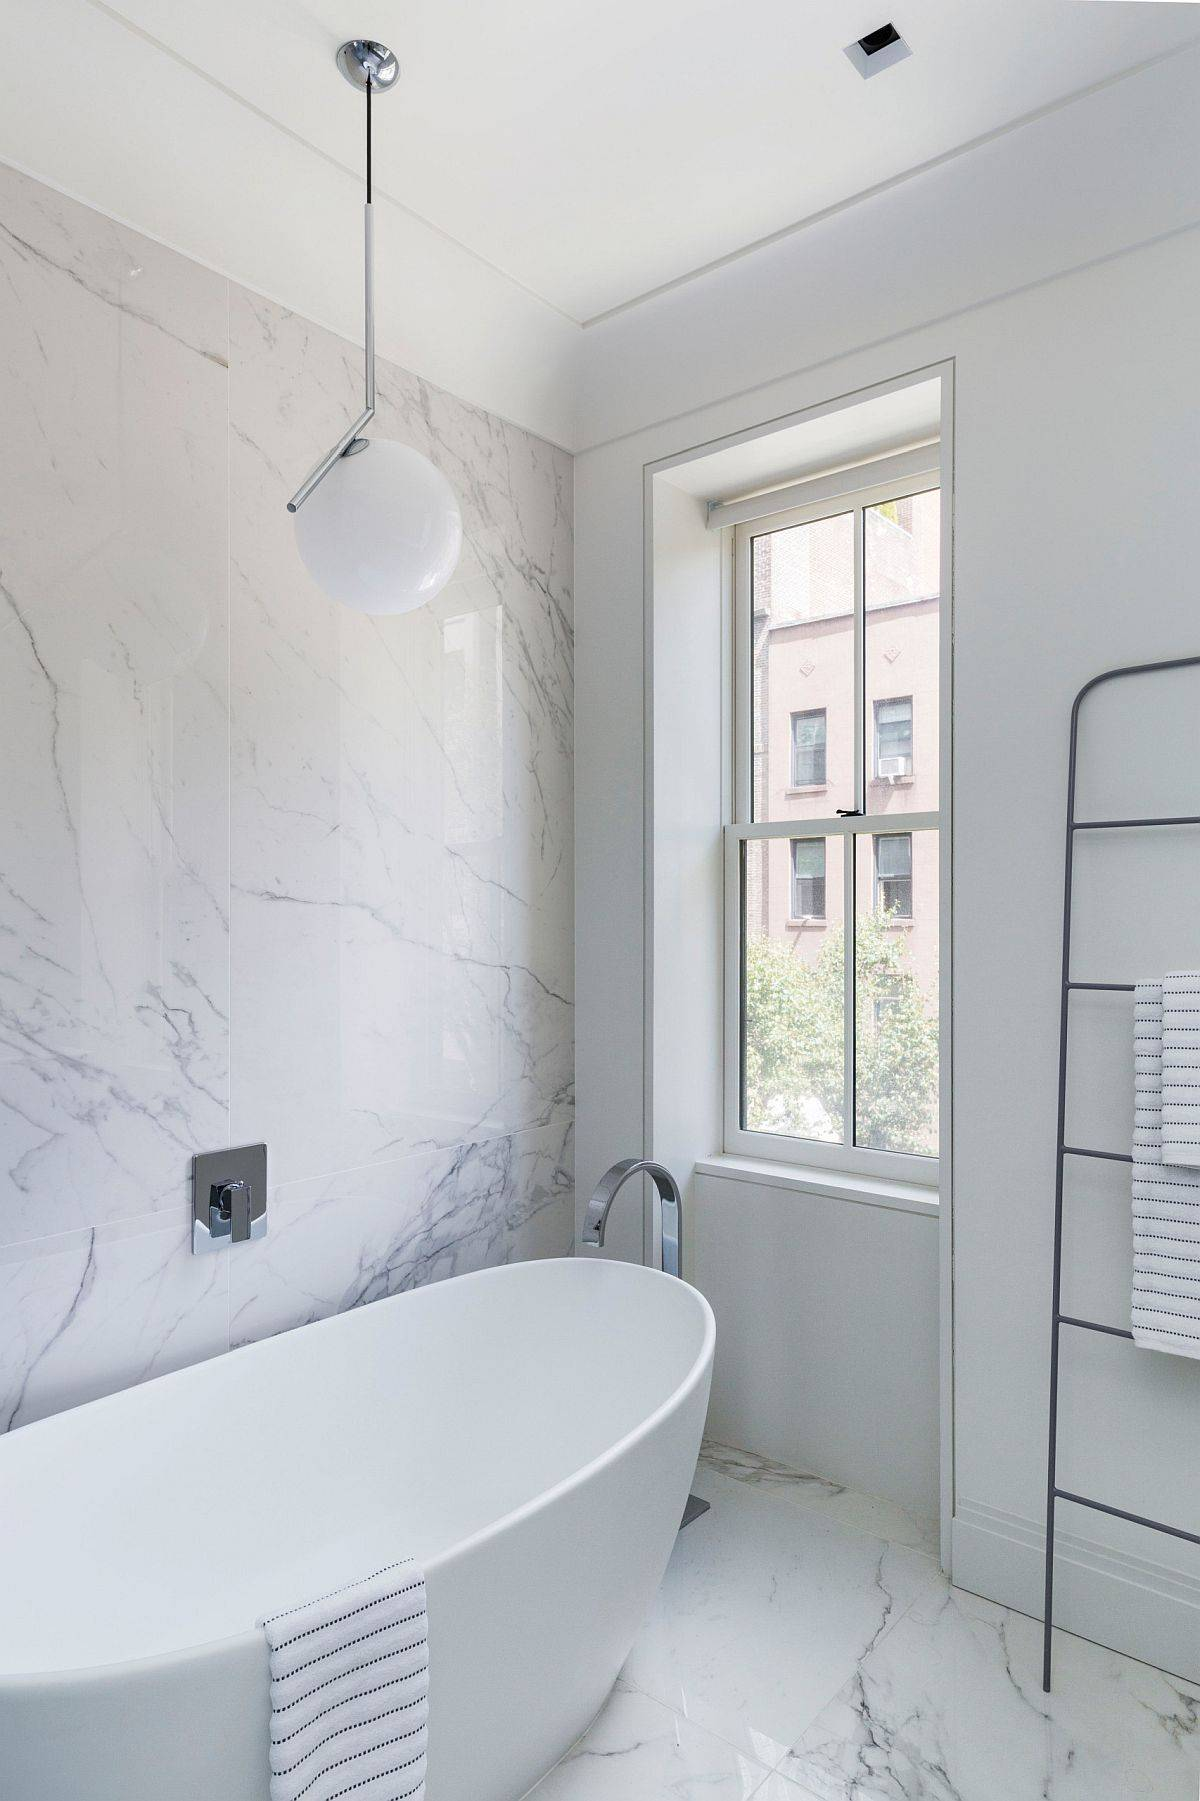 Dashing white tile for the modern bathroom in white with ample natural light